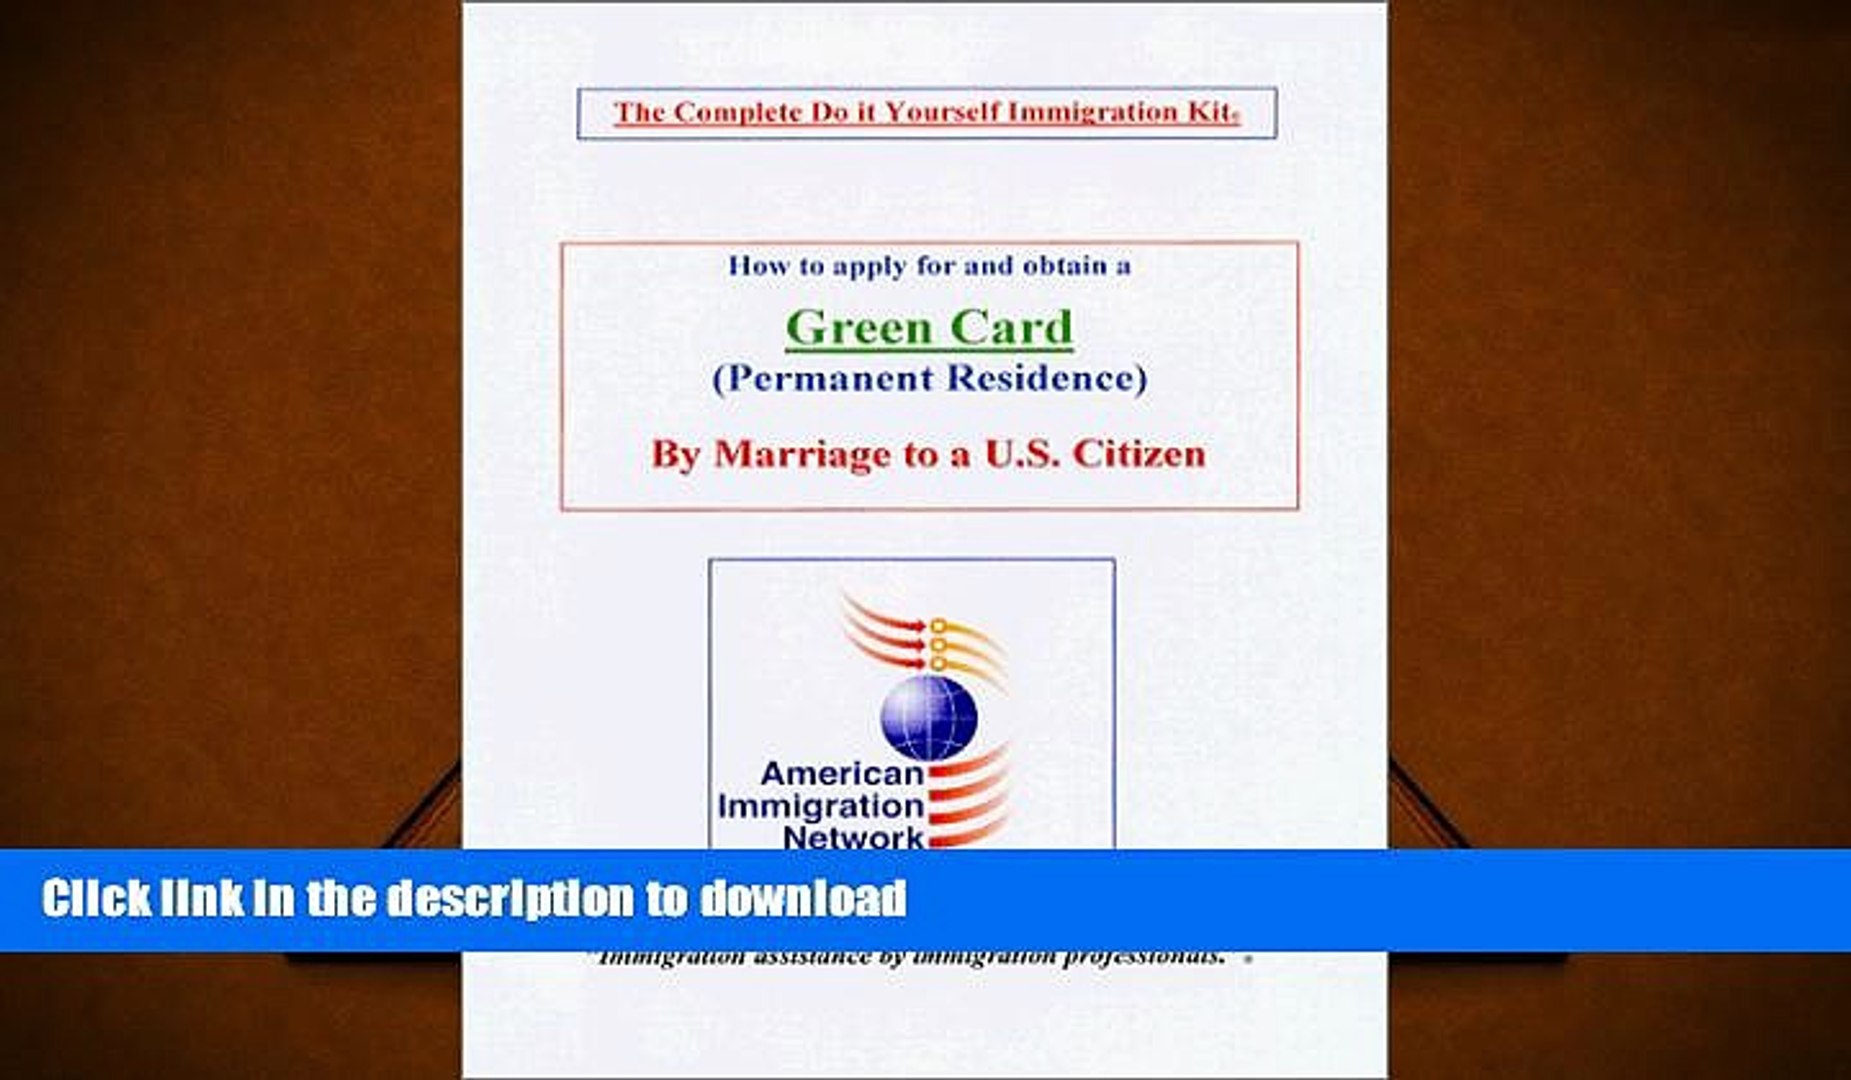 Read Book How to apply for and obtain a Green card by Marriage to a U.S. Citizen - The Complete Do